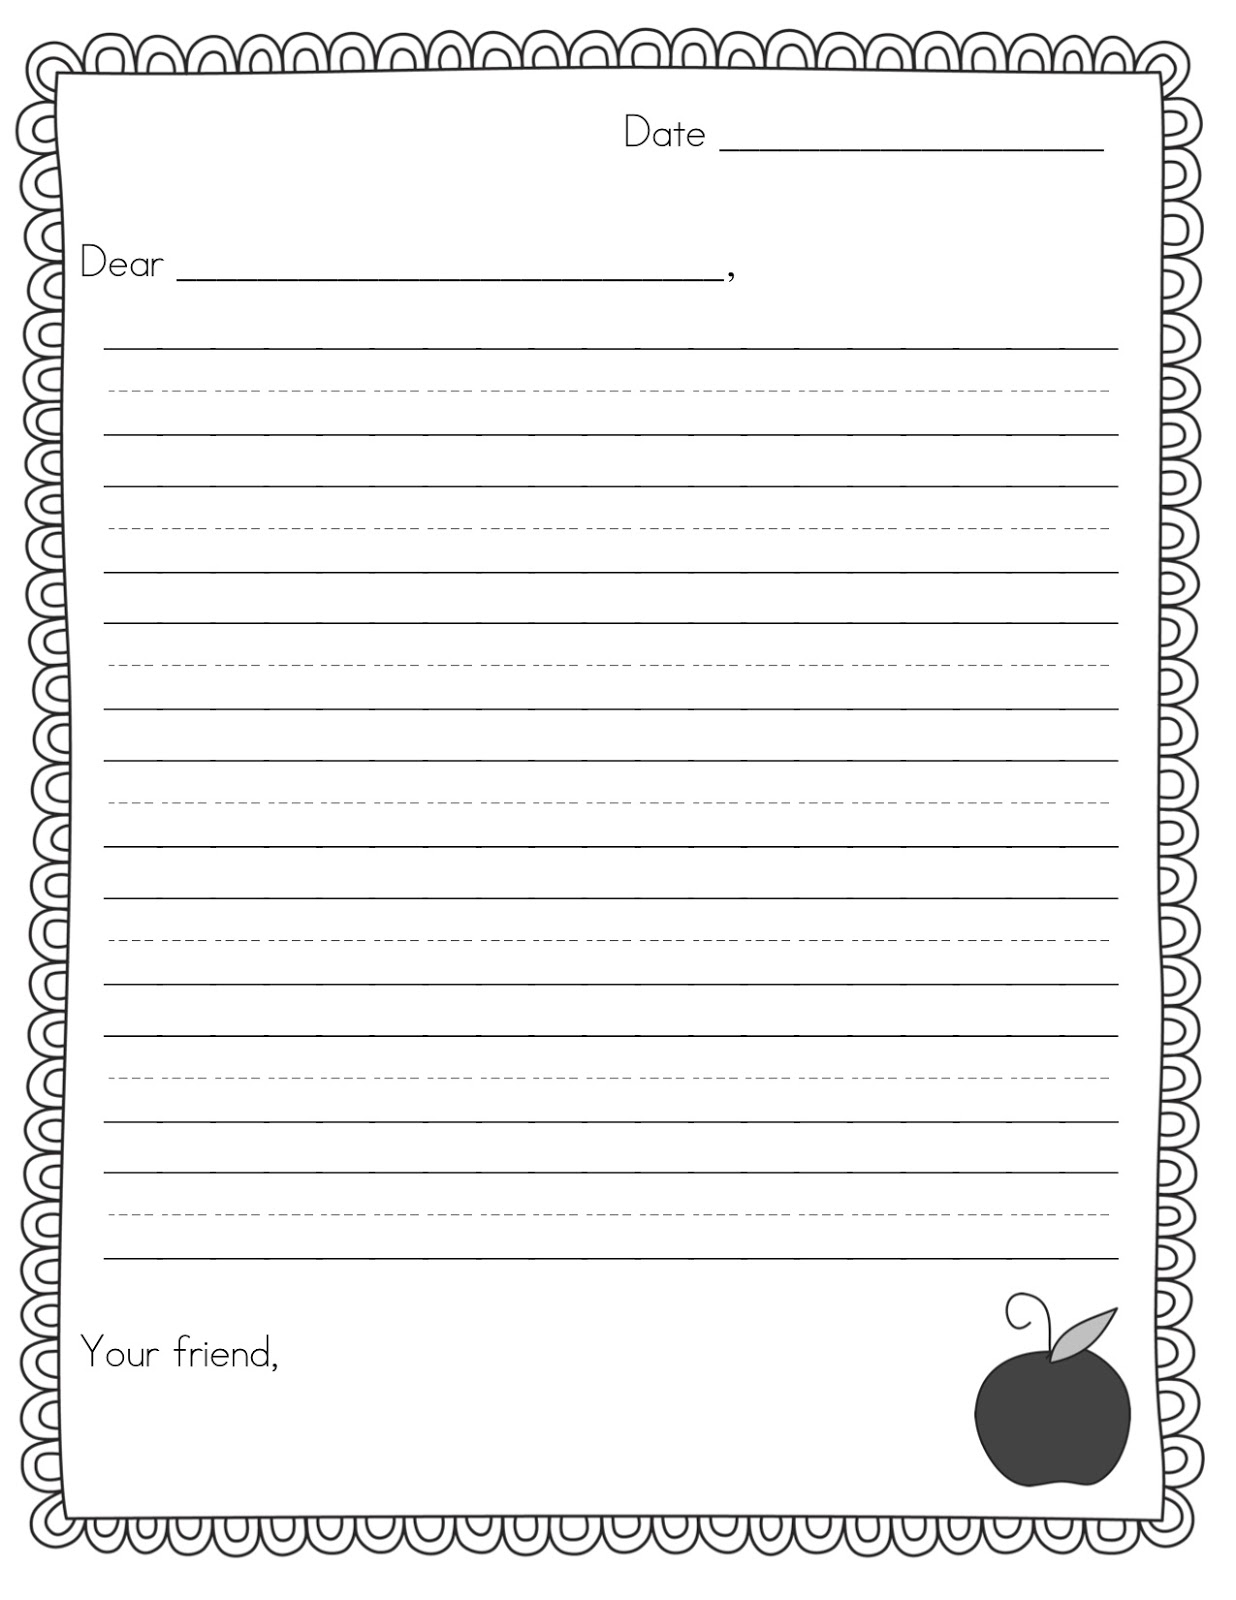 letter writing template for first grade - thanksgiving writing paper for 2nd grade writing papers